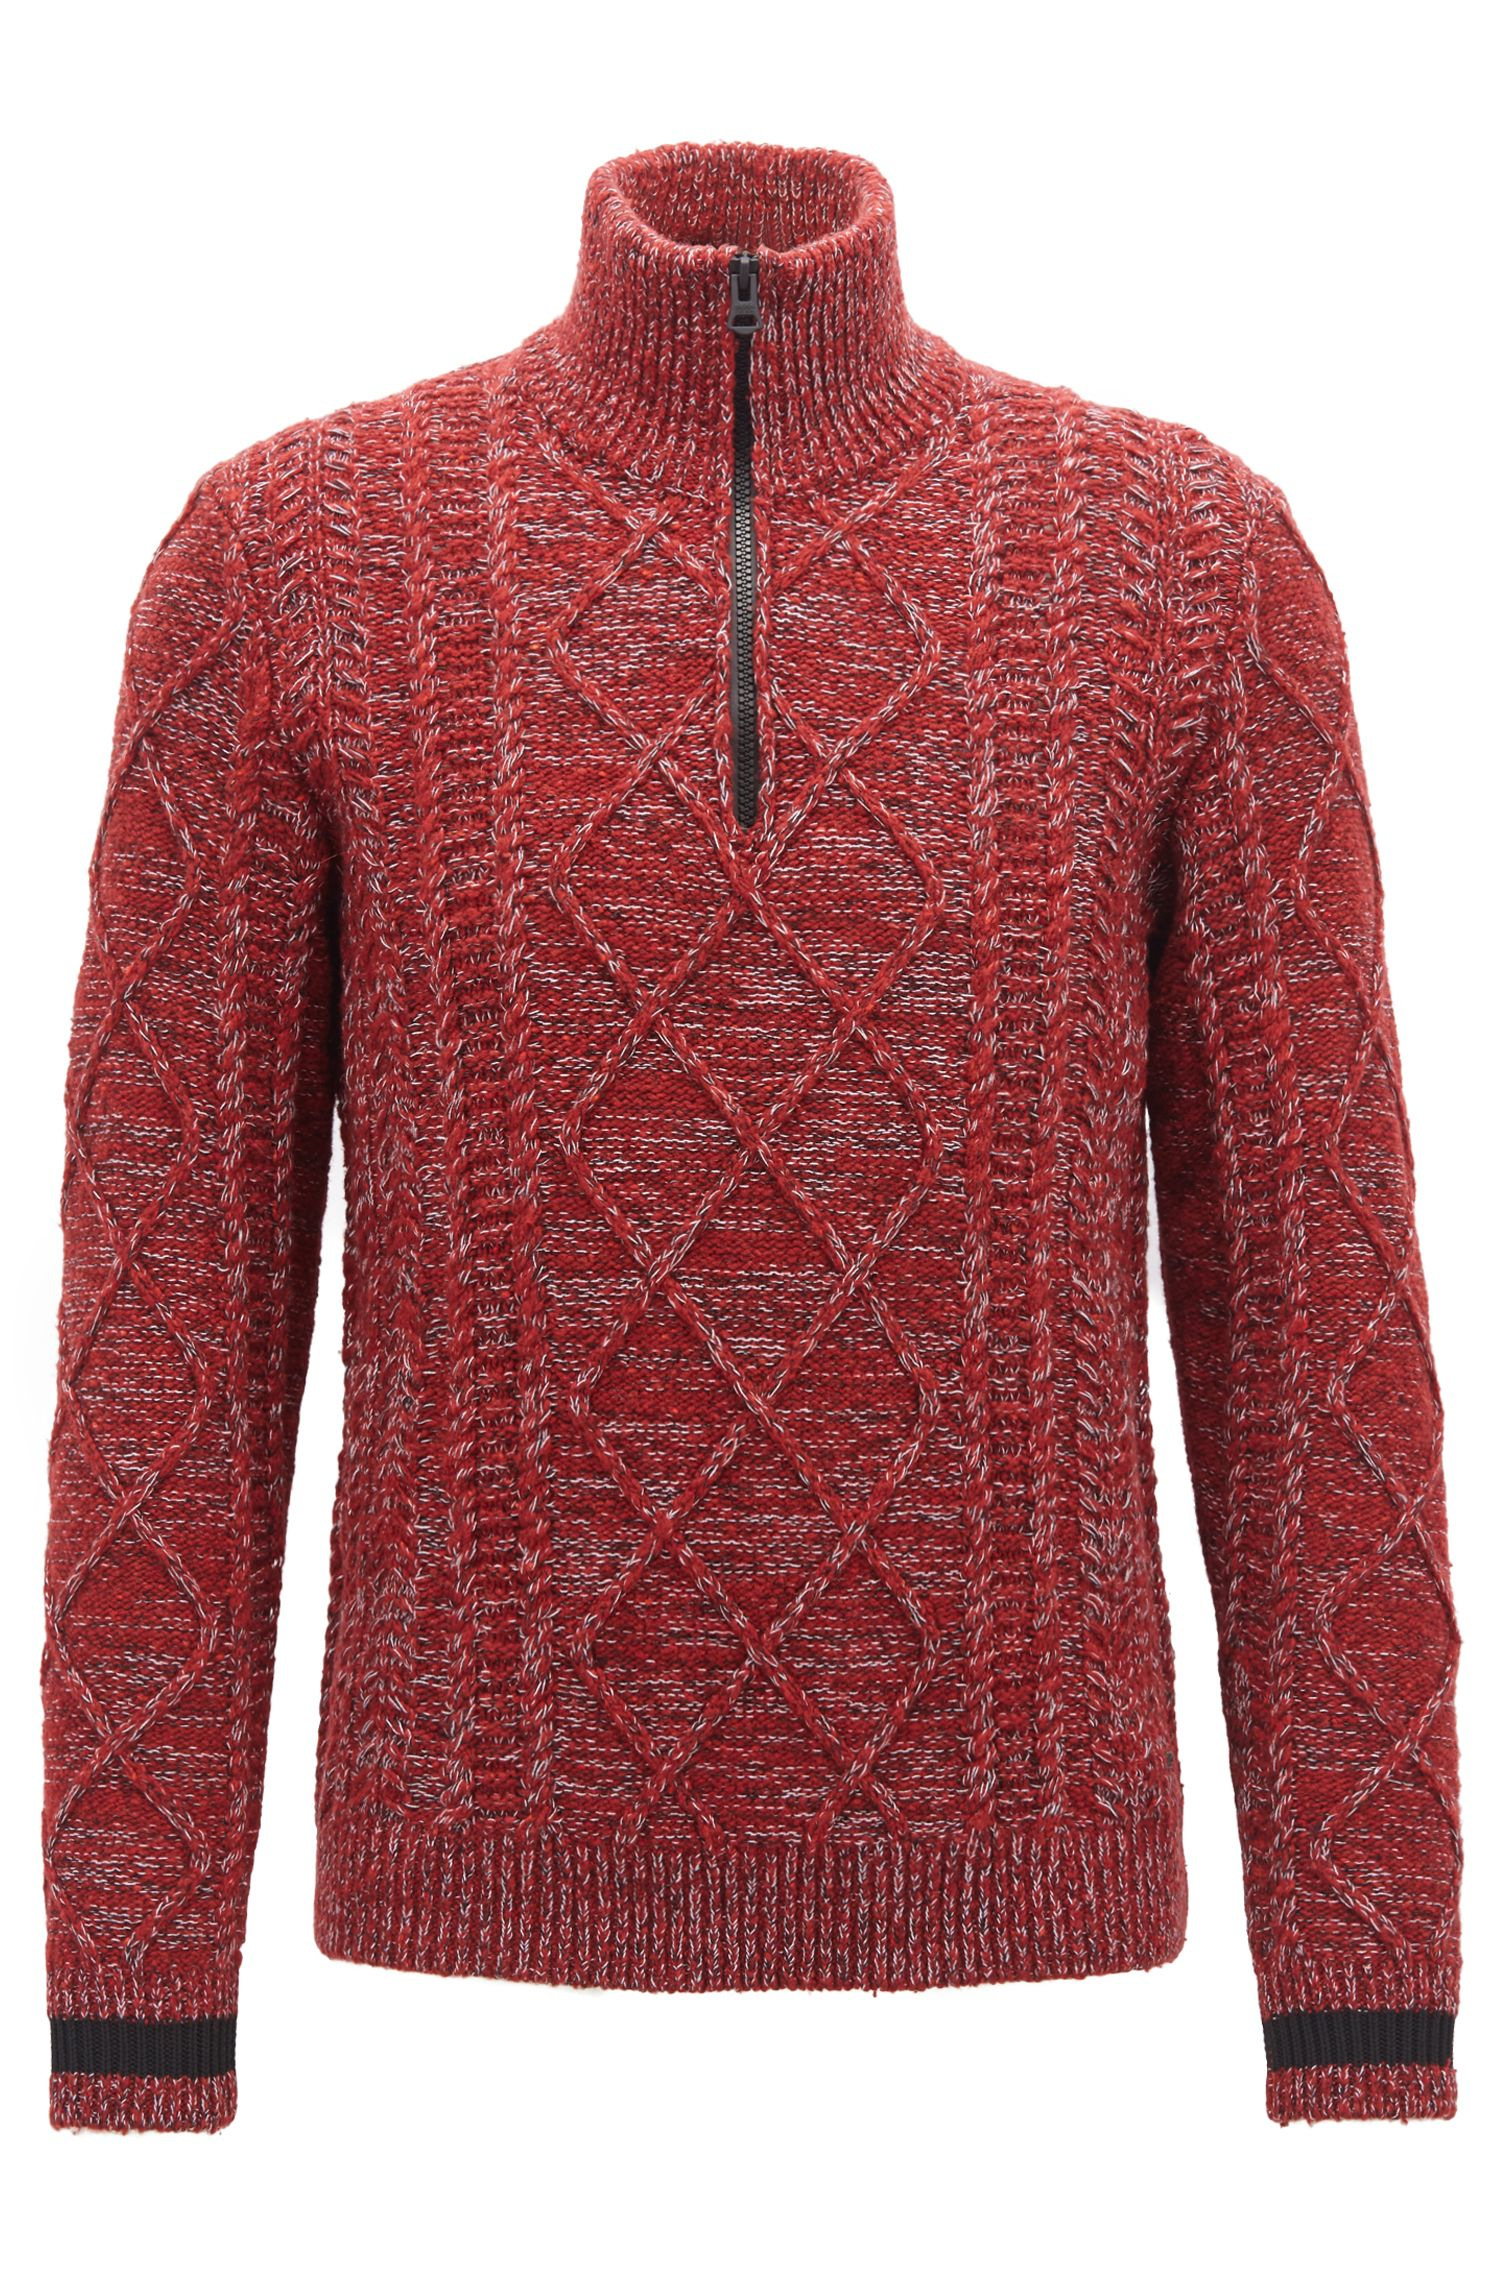 Zip-neck sweater in cable-knit tweed, Red